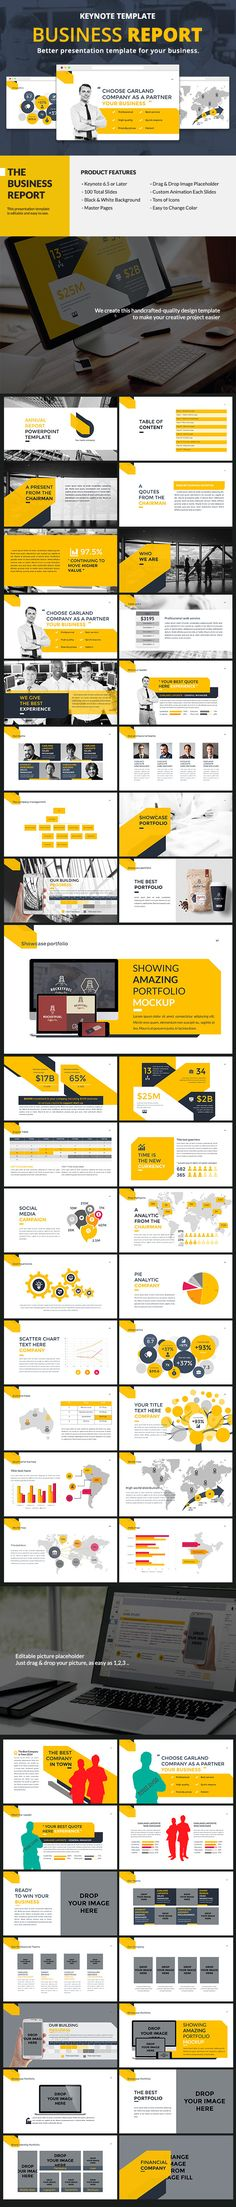 Business Report Keynote Template #design #slides Download: http://graphicriver.net/item/business-report-keynote/12624296?ref=ksioks